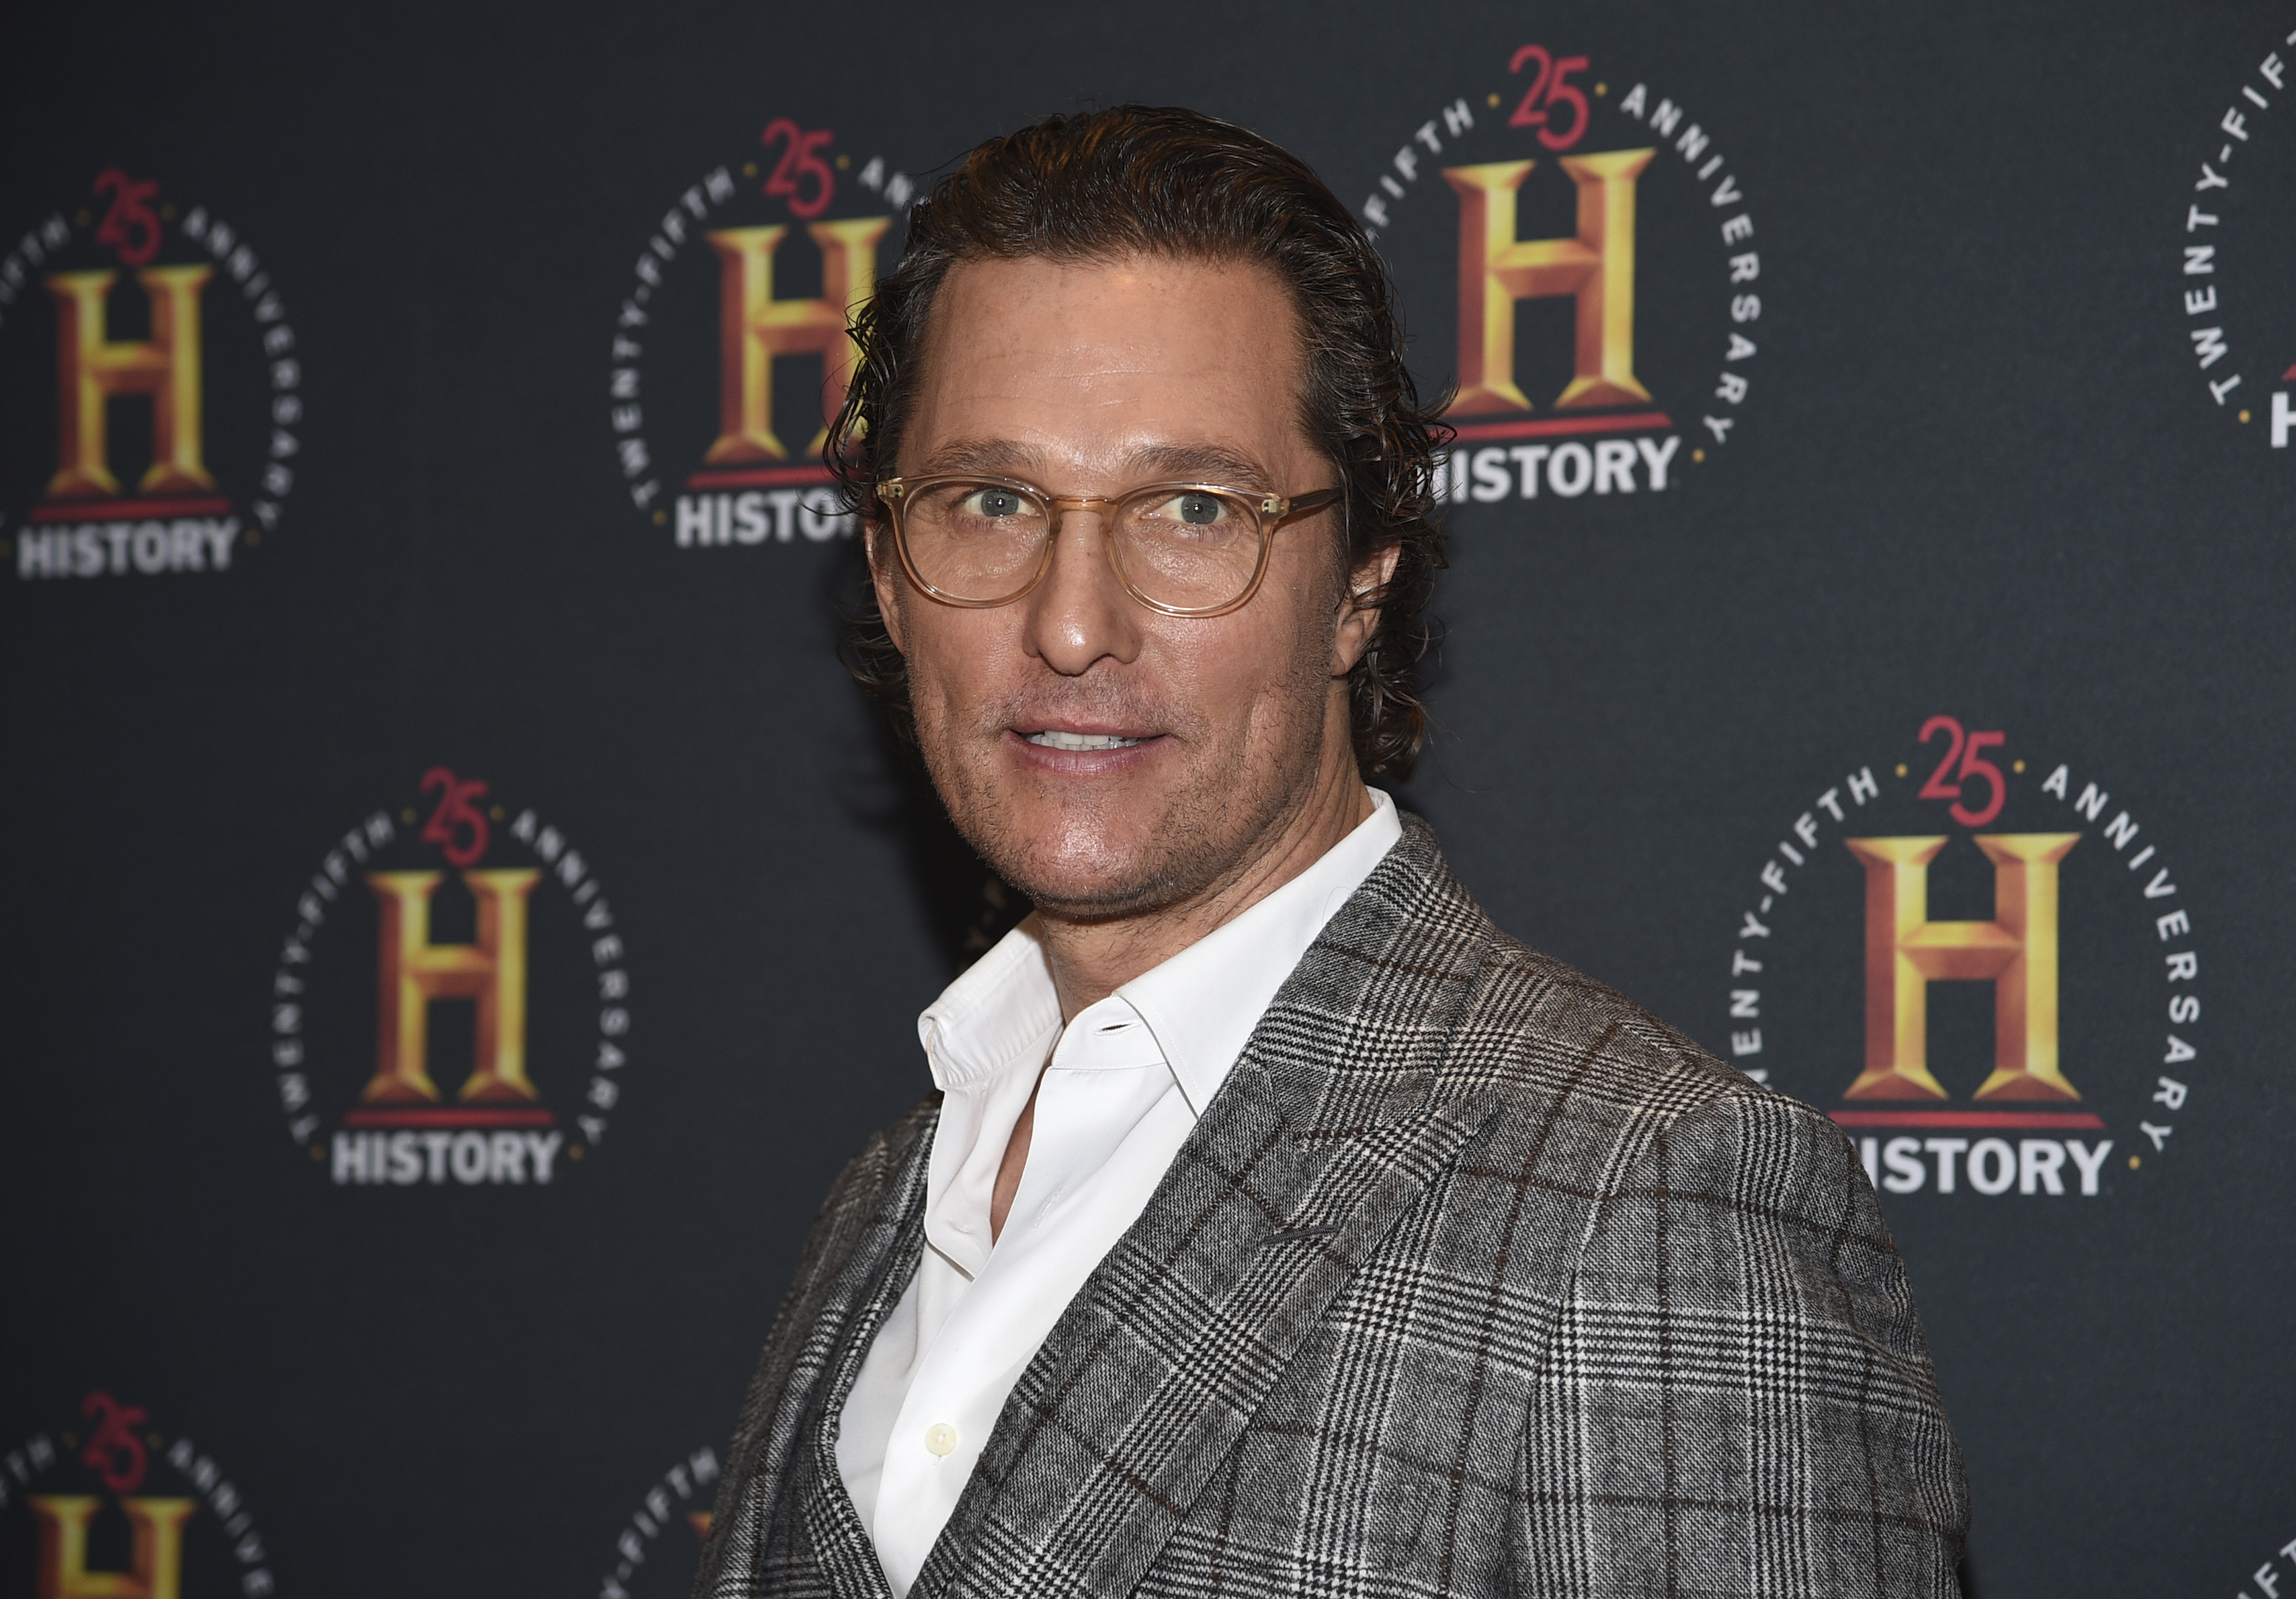 """Actor Matthew McConaughey attends A+E Network's """"HISTORYTalks: Leadership and Legacy"""" in New York,"""